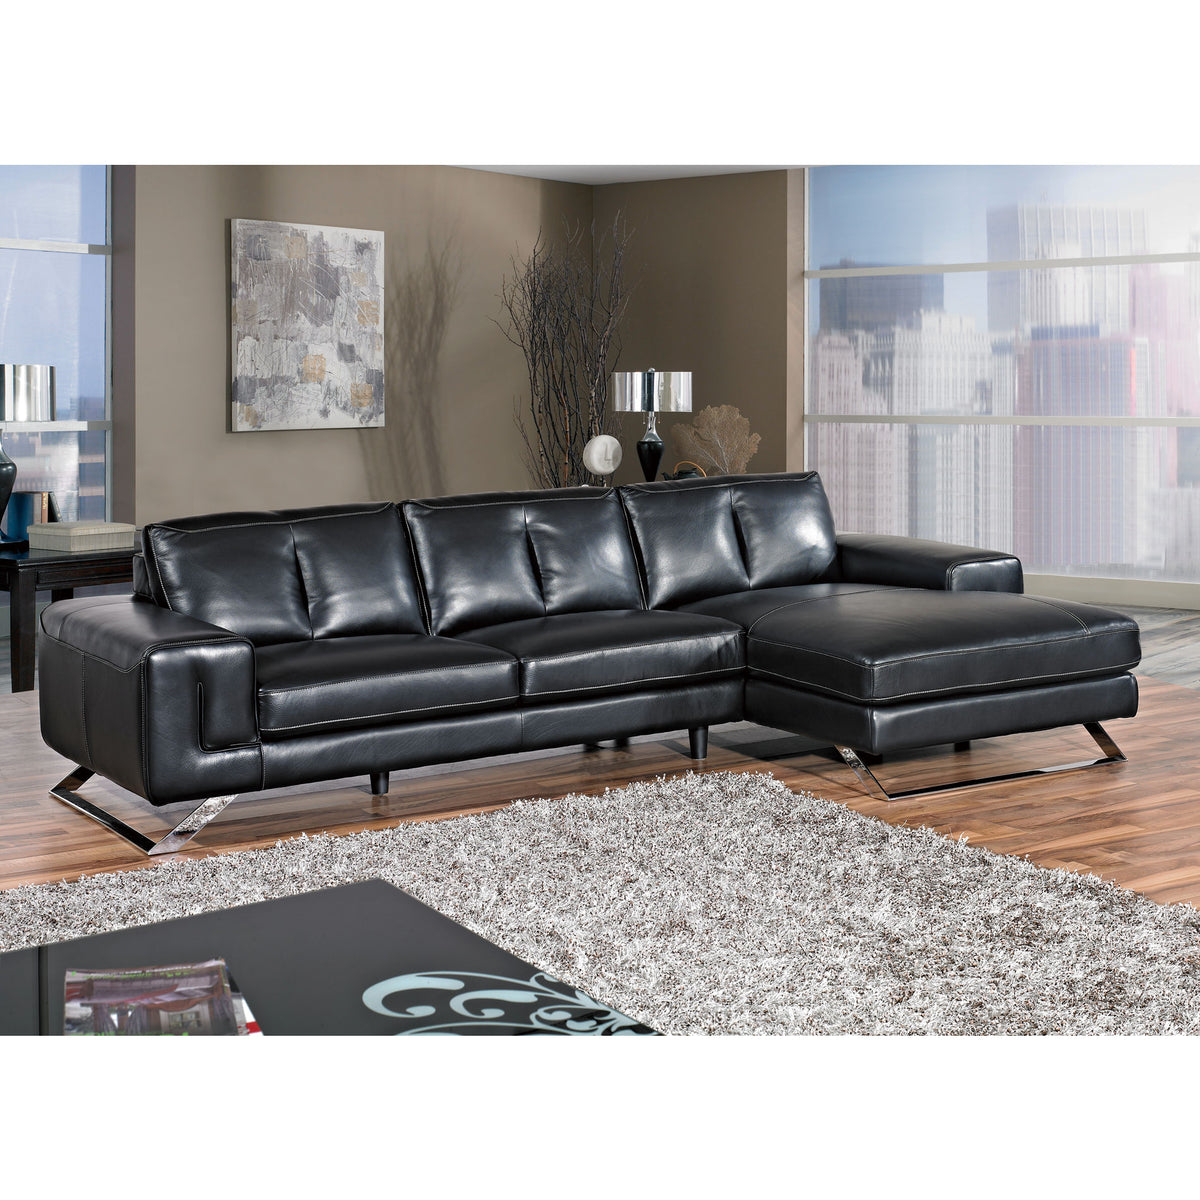 "Cortesi Home Contemporary Manhattan Genuine Leather Sectional Sofa with Right Facing Chaise Lounge, Black 116"" Wide"